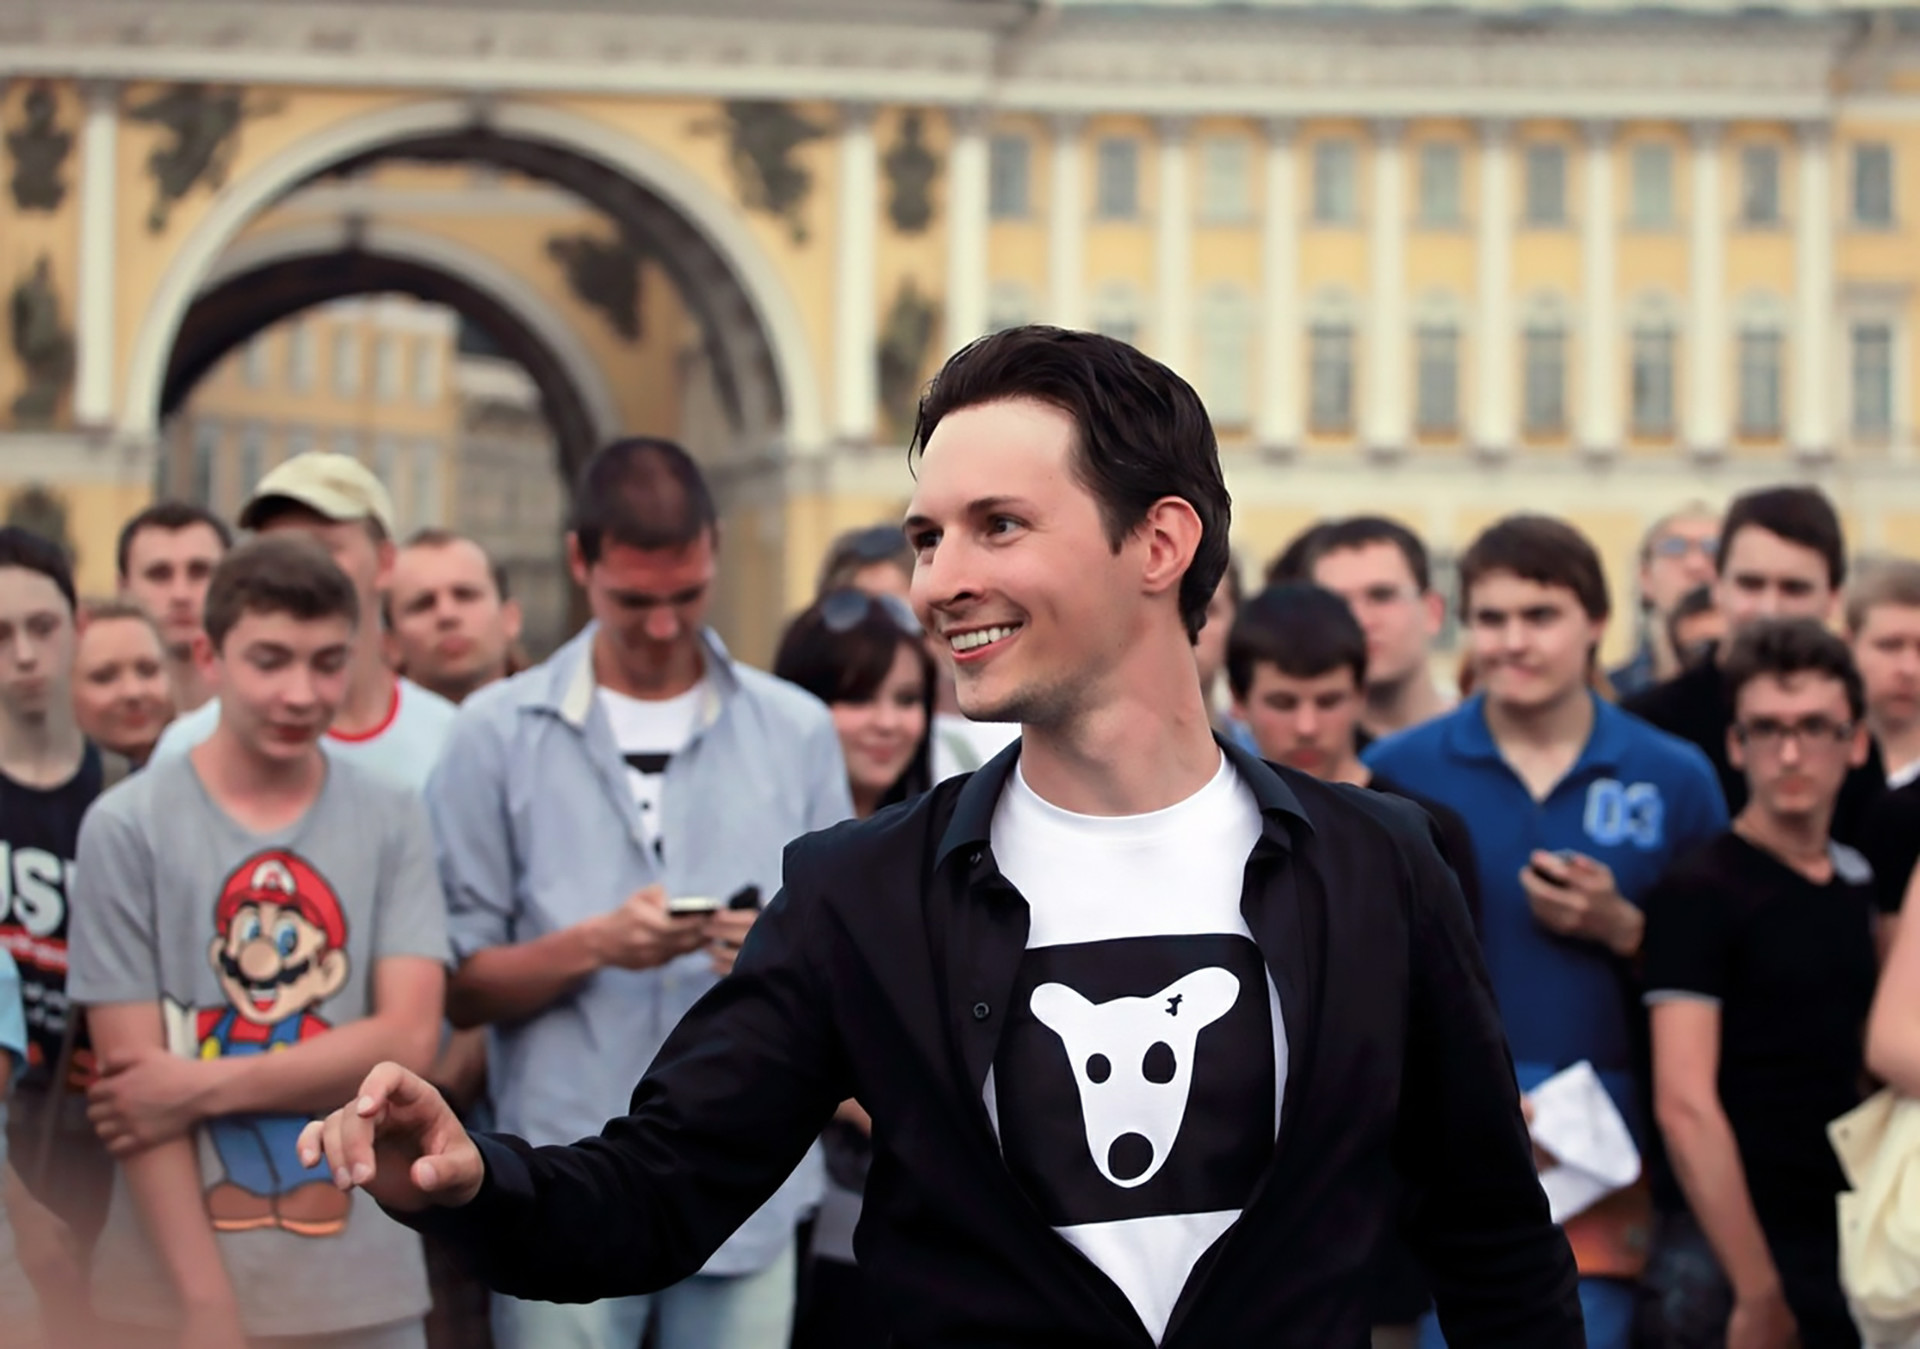 Pavel Durov, Russian entrepreneur who is best known for being the founder of the social networking site VK, and later the Telegram Messenger.